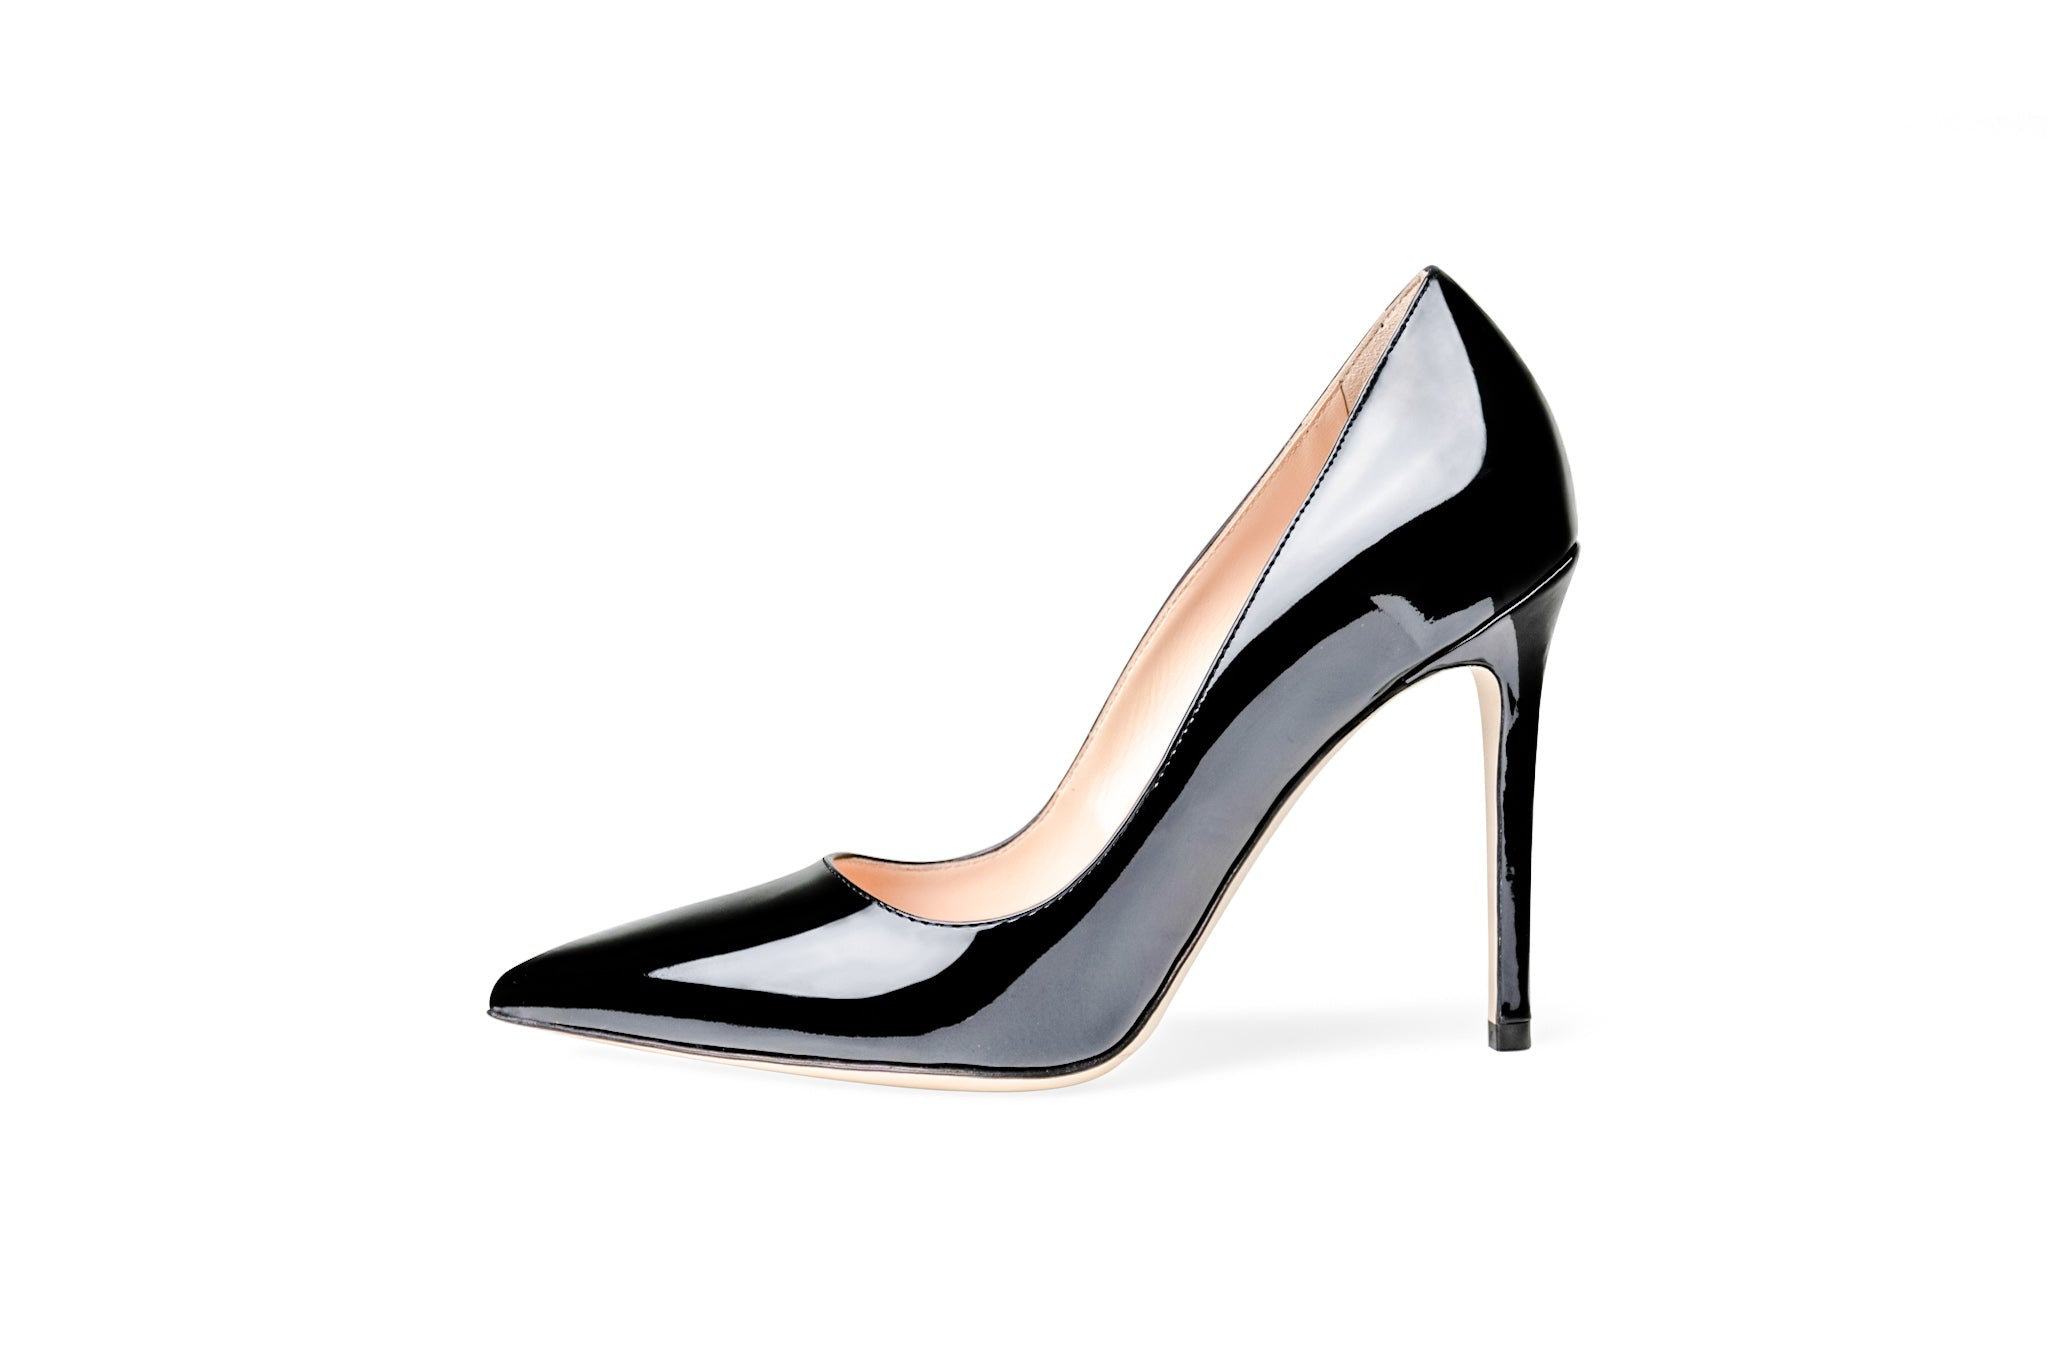 The Black Collection - 105mm Heel in Italian Patent Leather